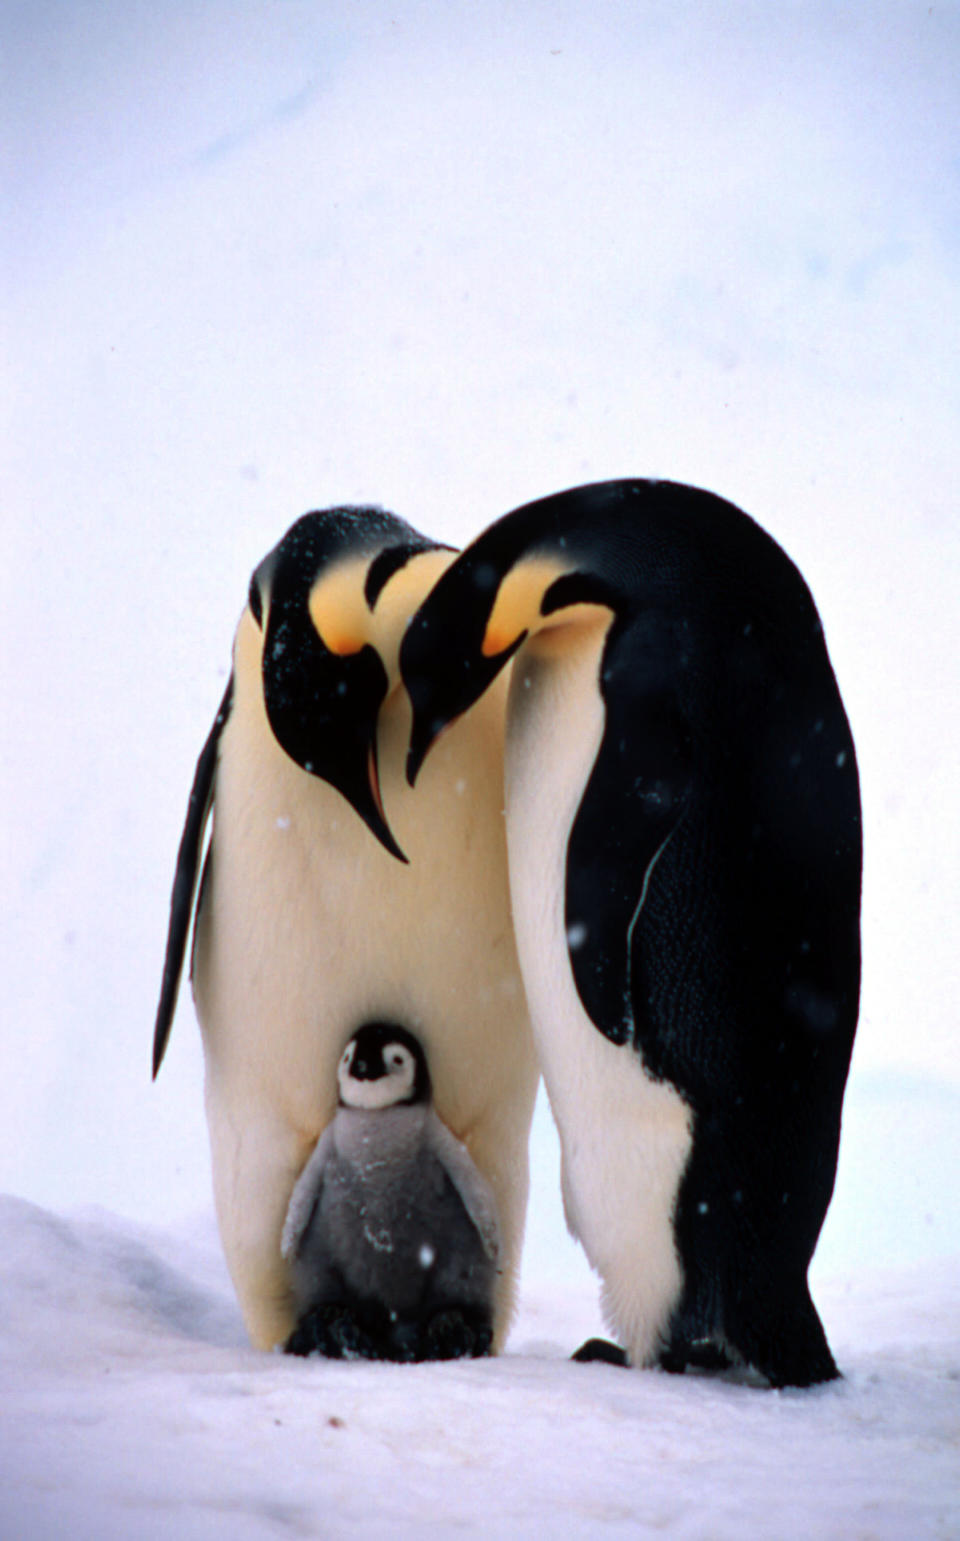 Emperor penguin adults and chick (Fritz Pölking/WWF/PA)